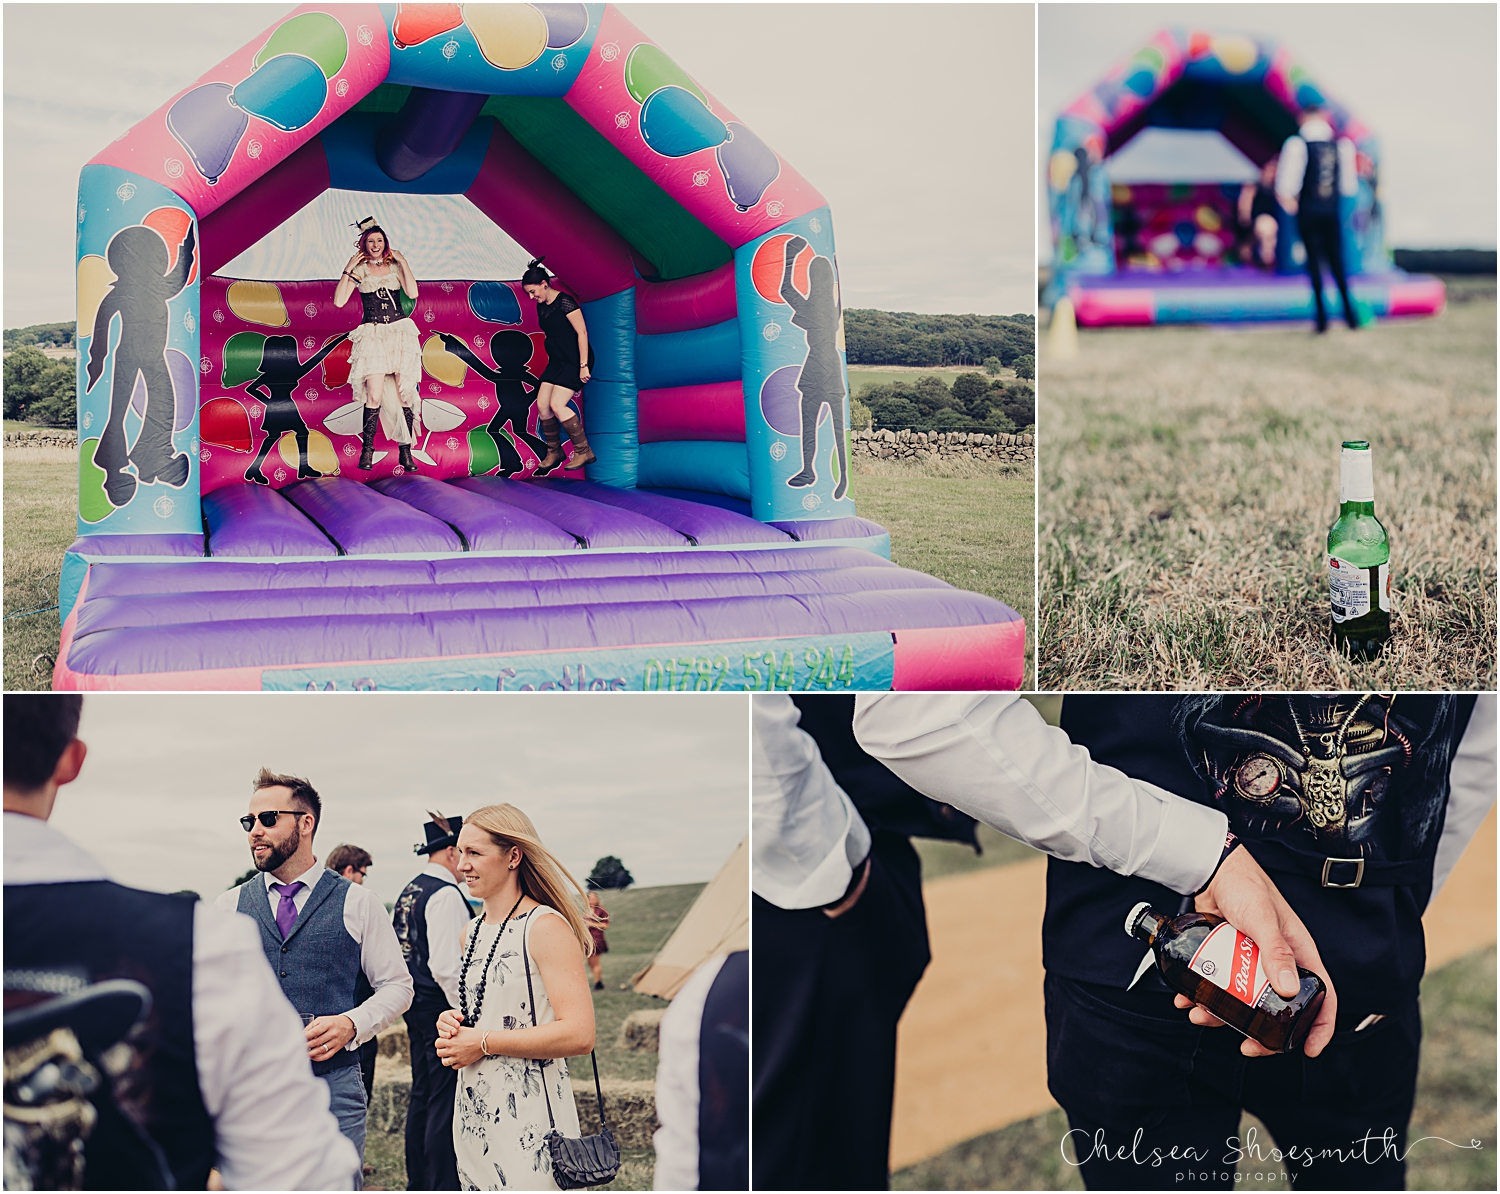 April & Rien Wedding - Chelsea Shoesmith Photoraphy00259